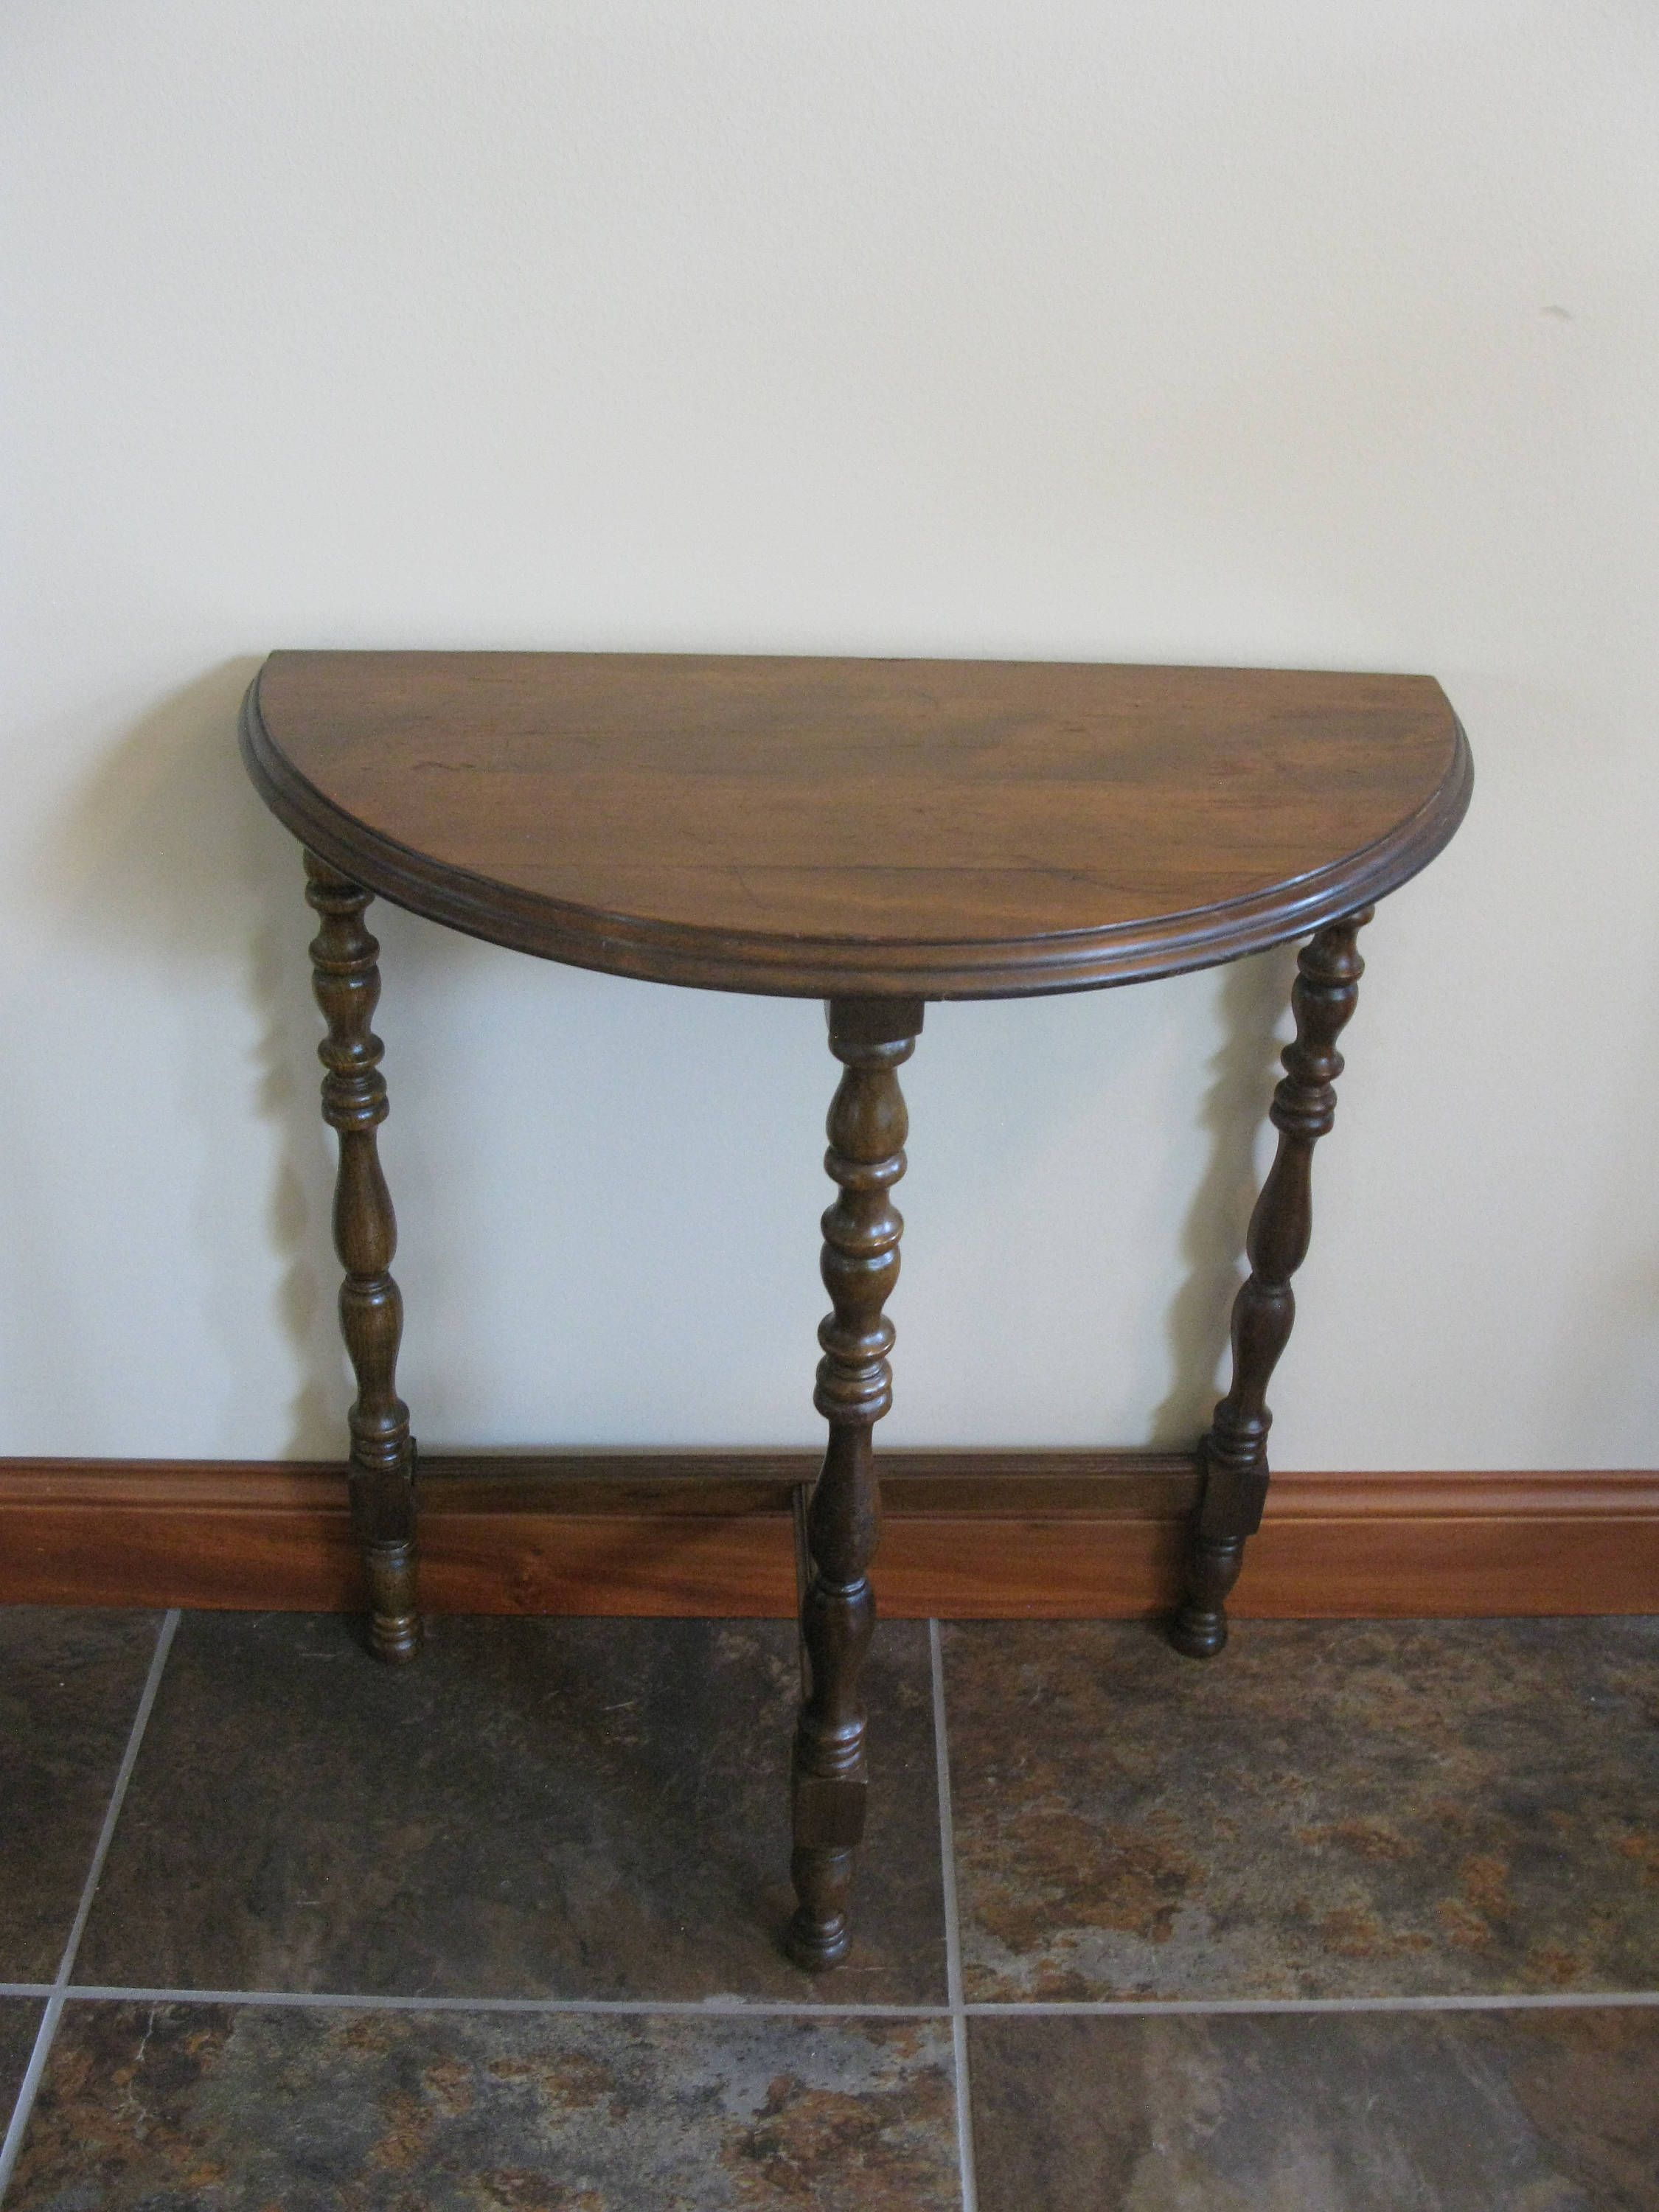 Vintage Half Moon side table -3 legged table -small wood ...